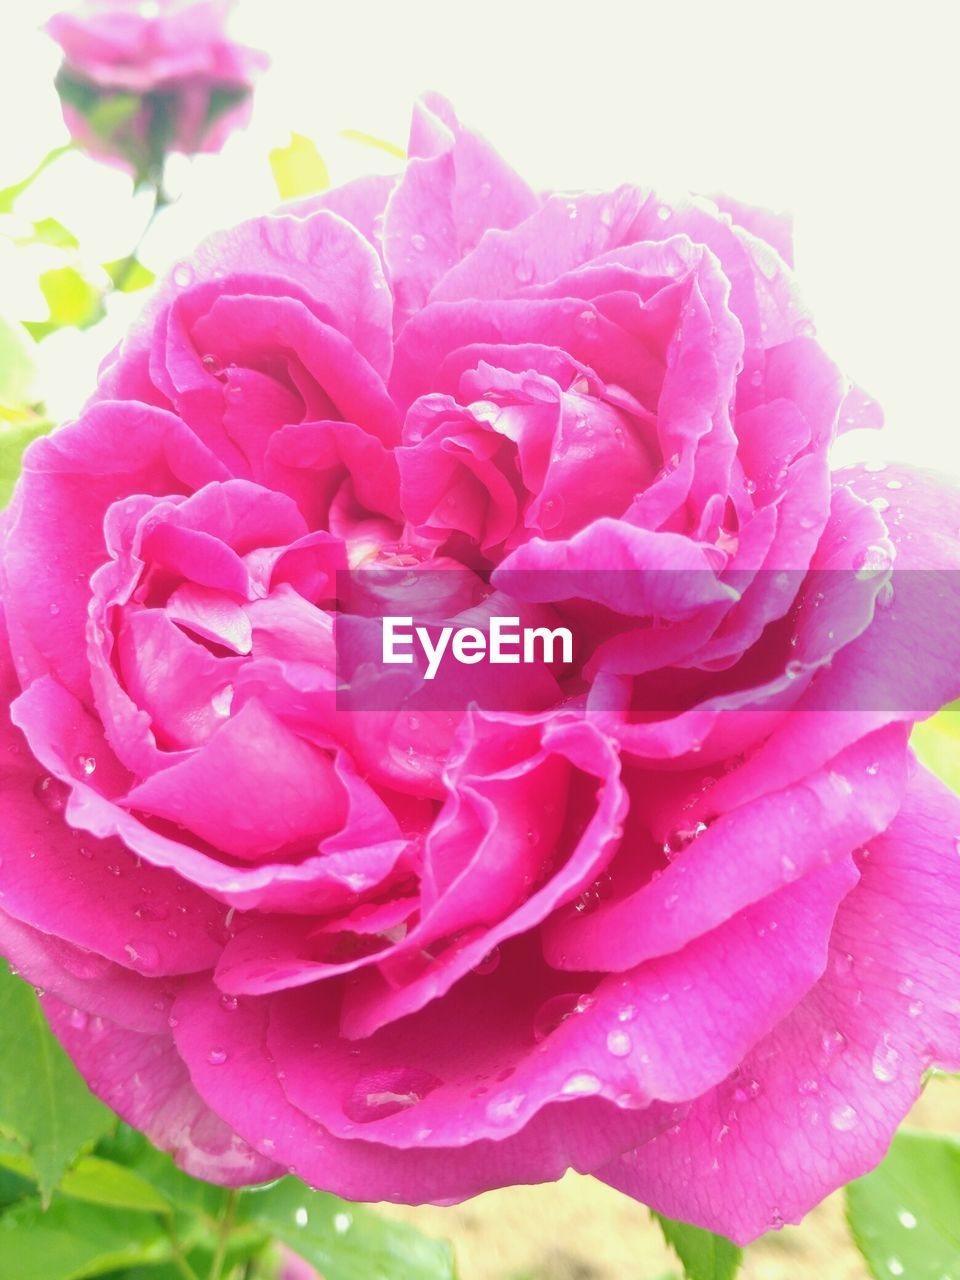 flower, petal, beauty in nature, nature, pink color, fragility, freshness, drop, rose - flower, flower head, growth, plant, no people, close-up, water, outdoors, blooming, day, peony